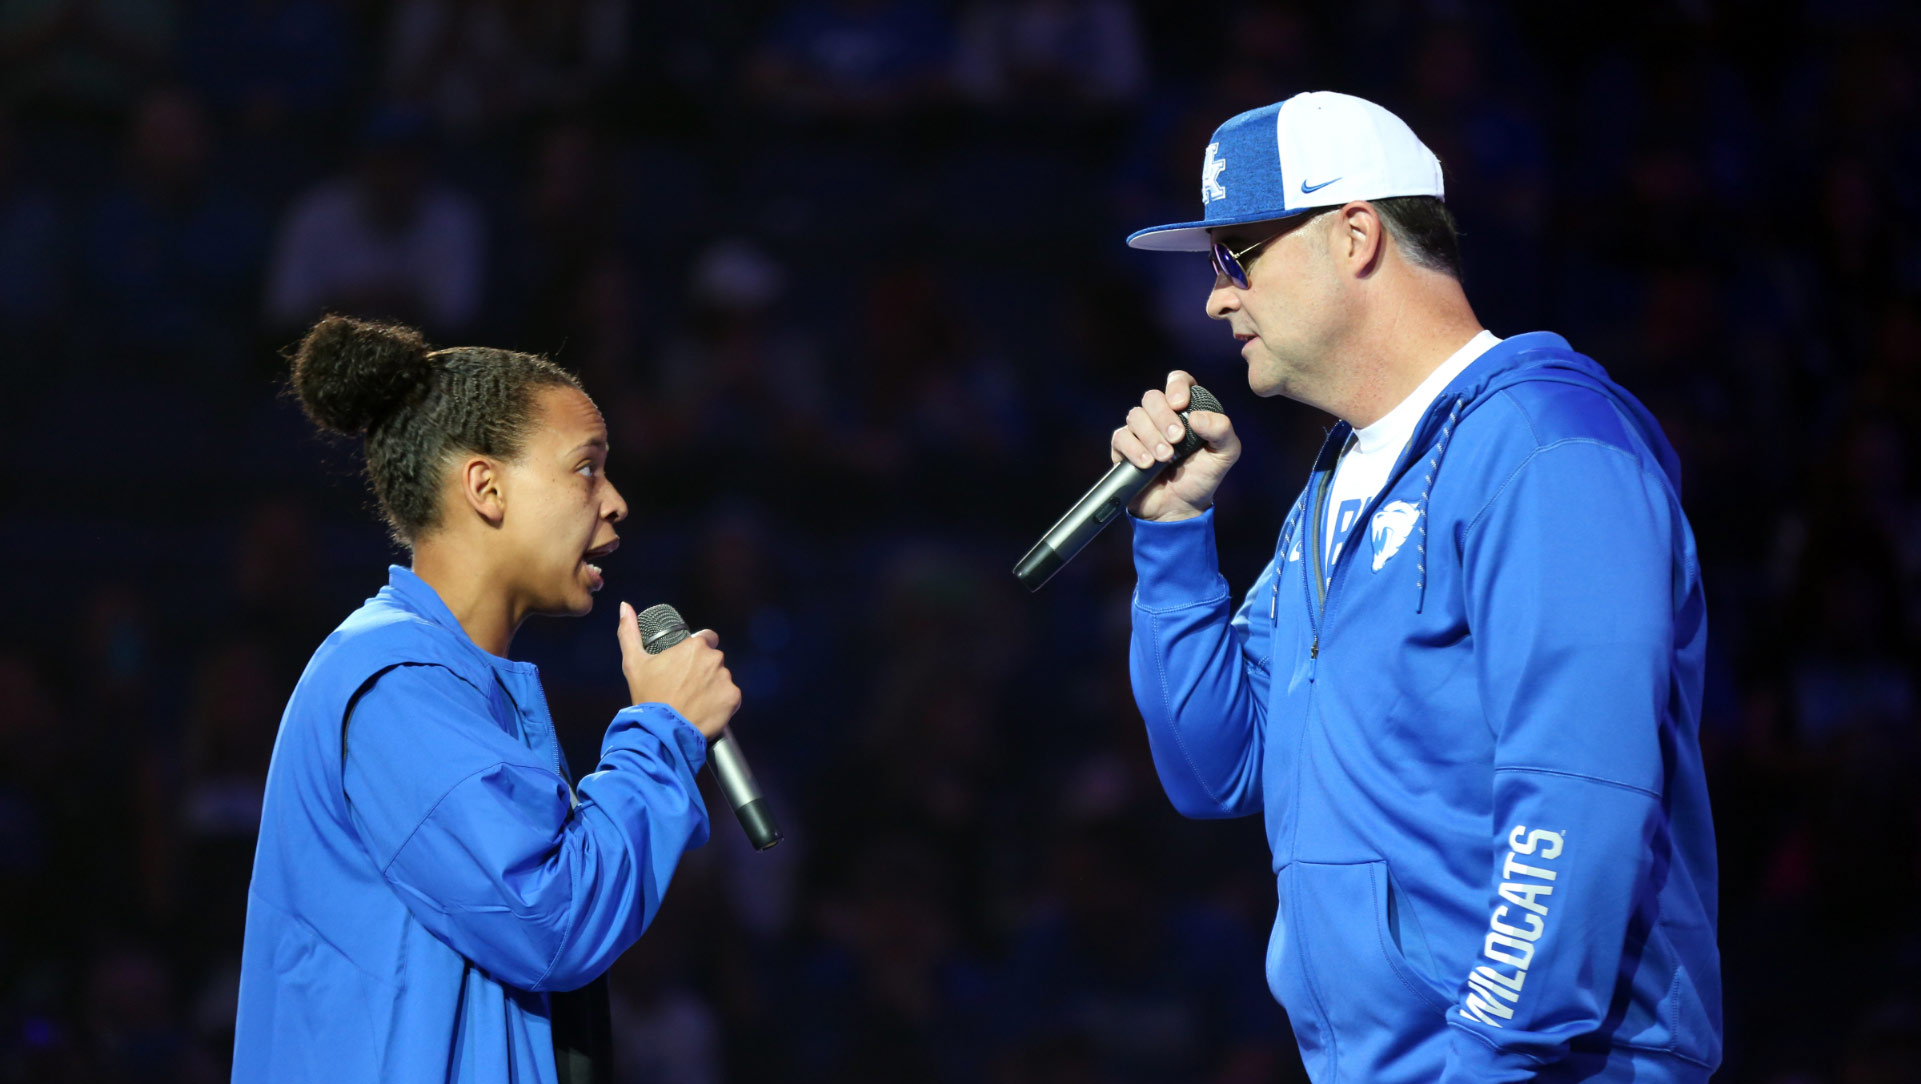 Amber and Coach Mitchell, dressed in UK jackets, both holding microphones and talking to each other during Big Blue Madness.